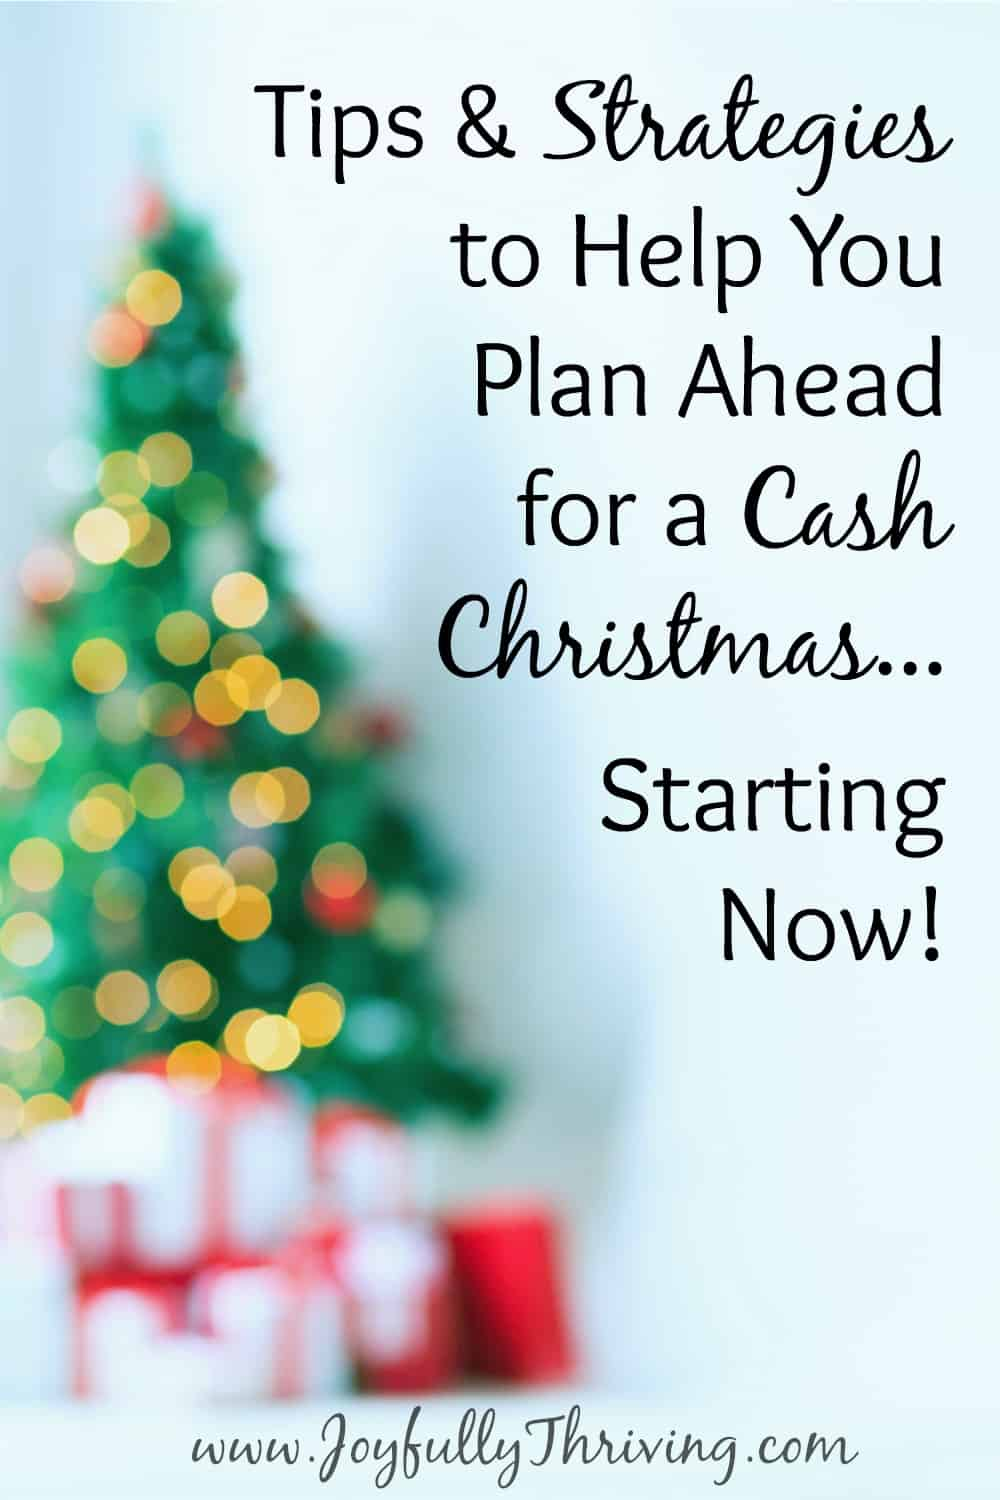 Plan Ahead for a Cash Christmas...Starting Now!